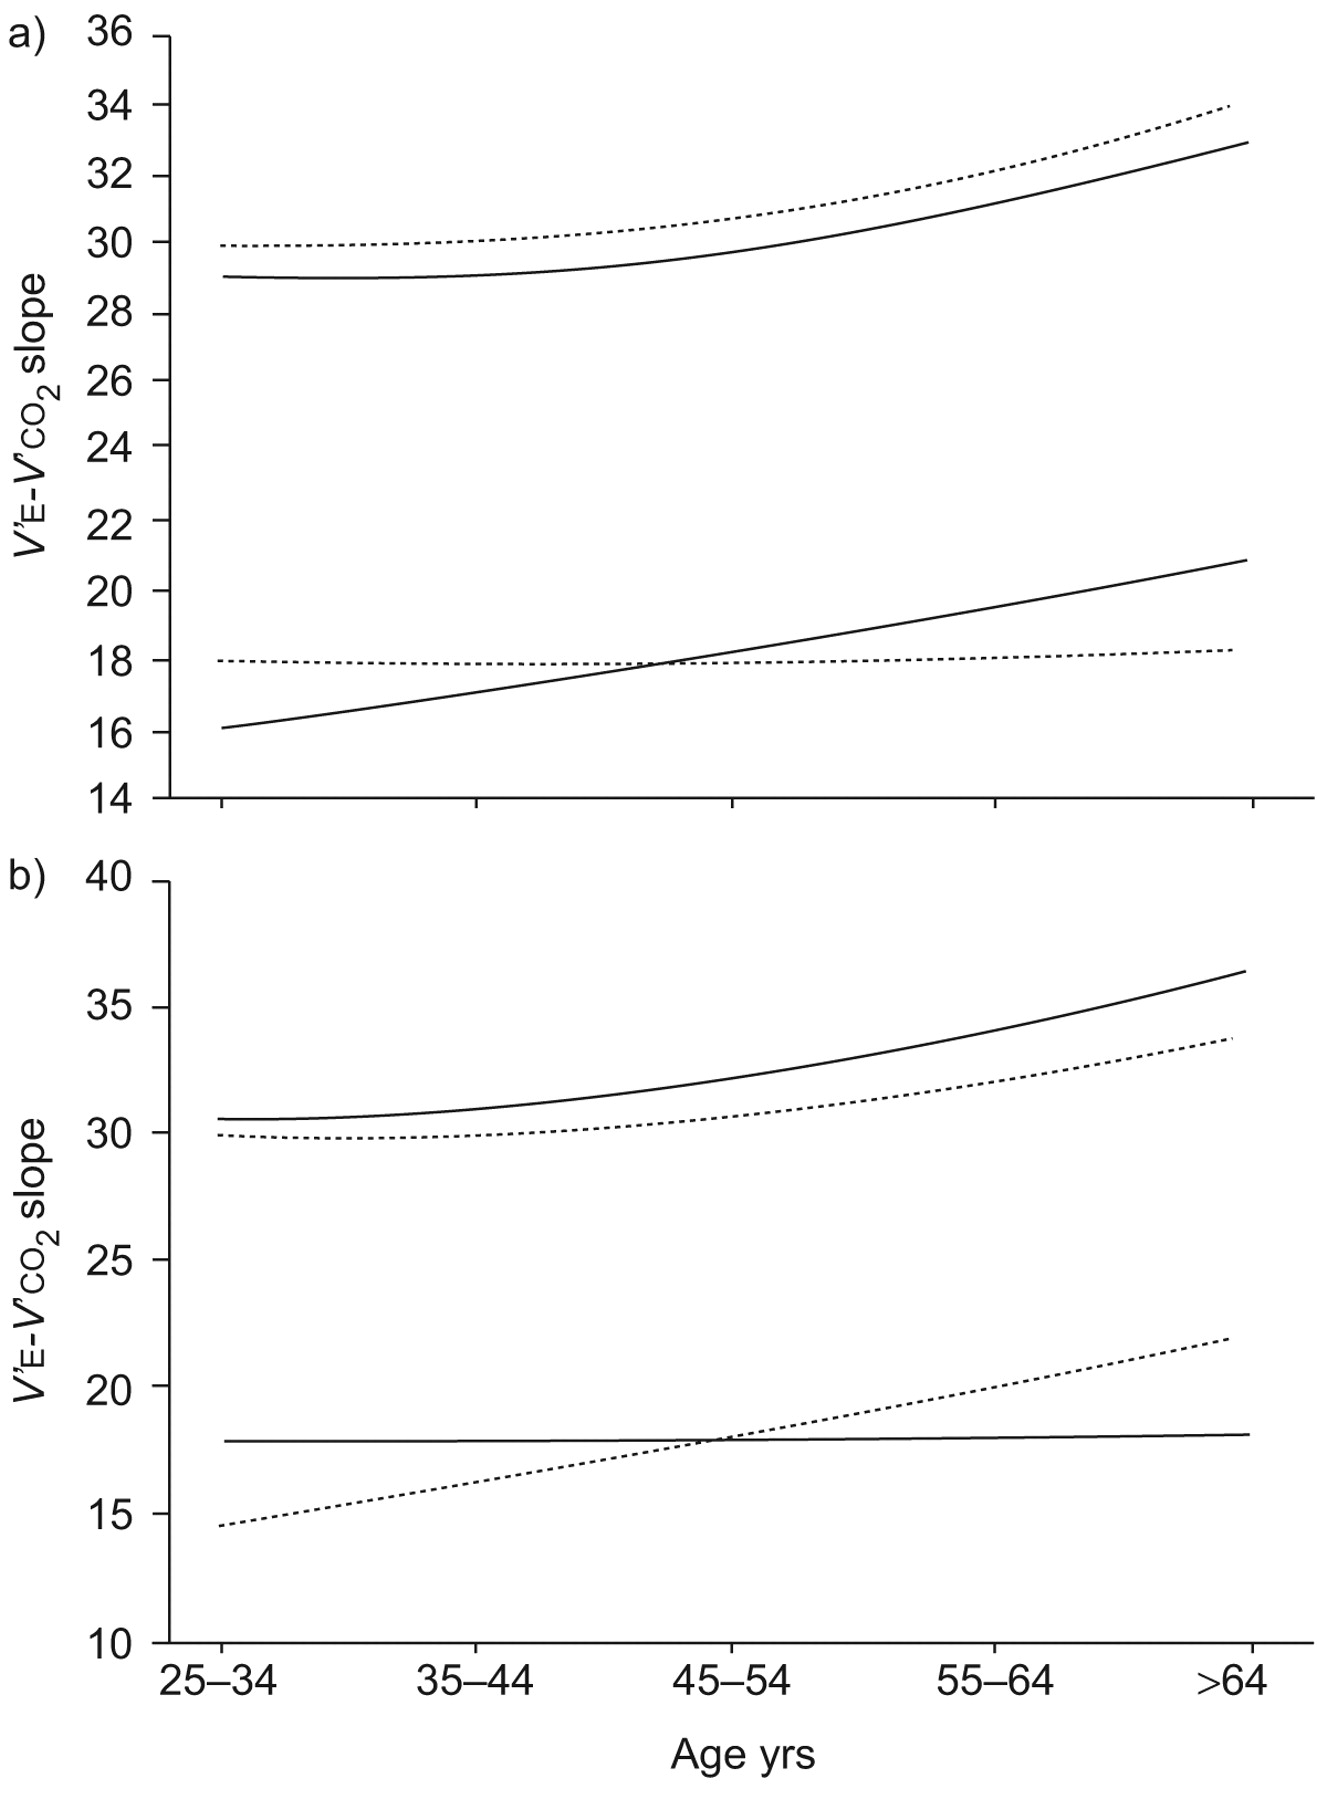 Reference values for cardiopulmonary exercise testing in